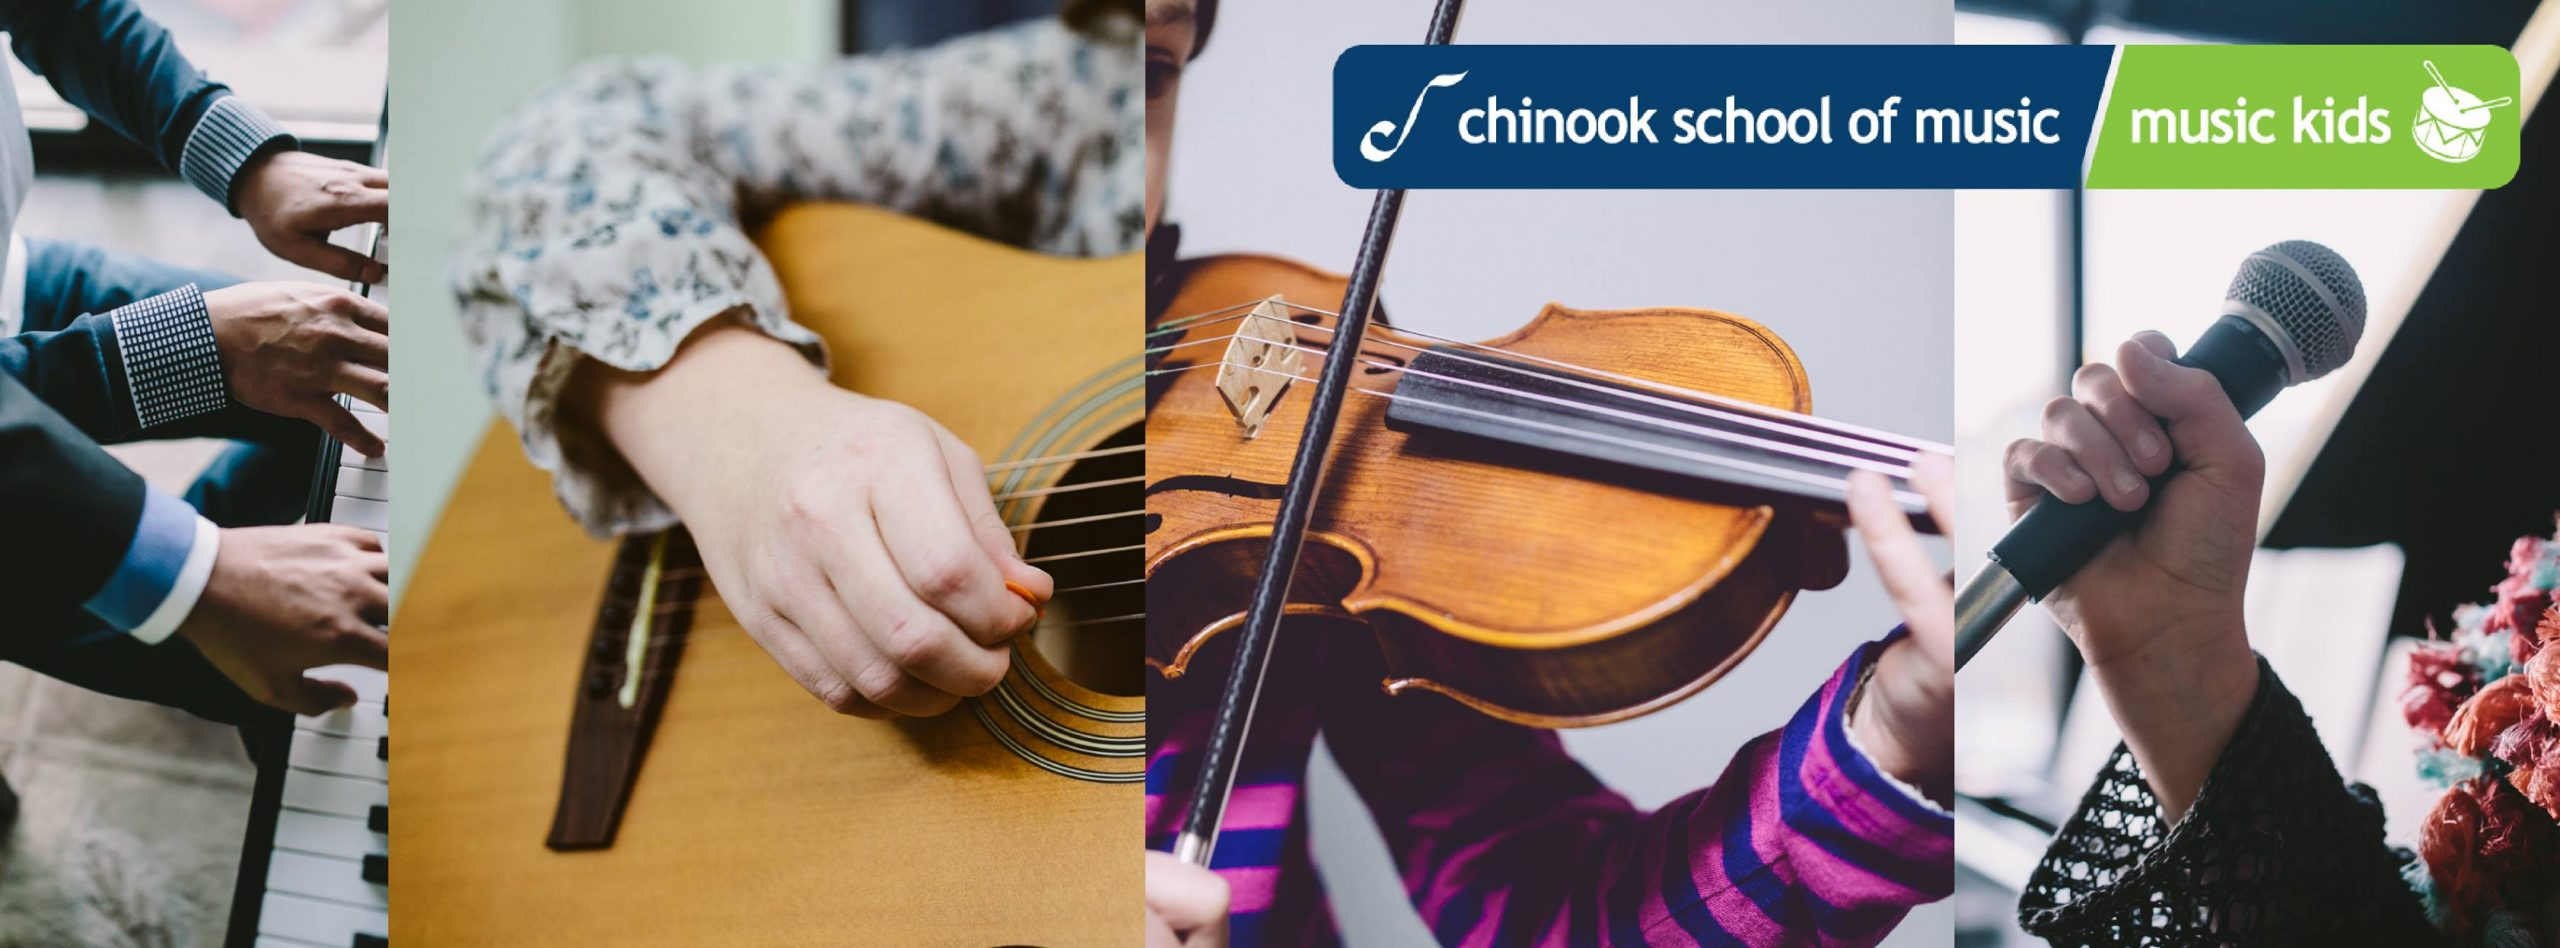 Chinook School of Music